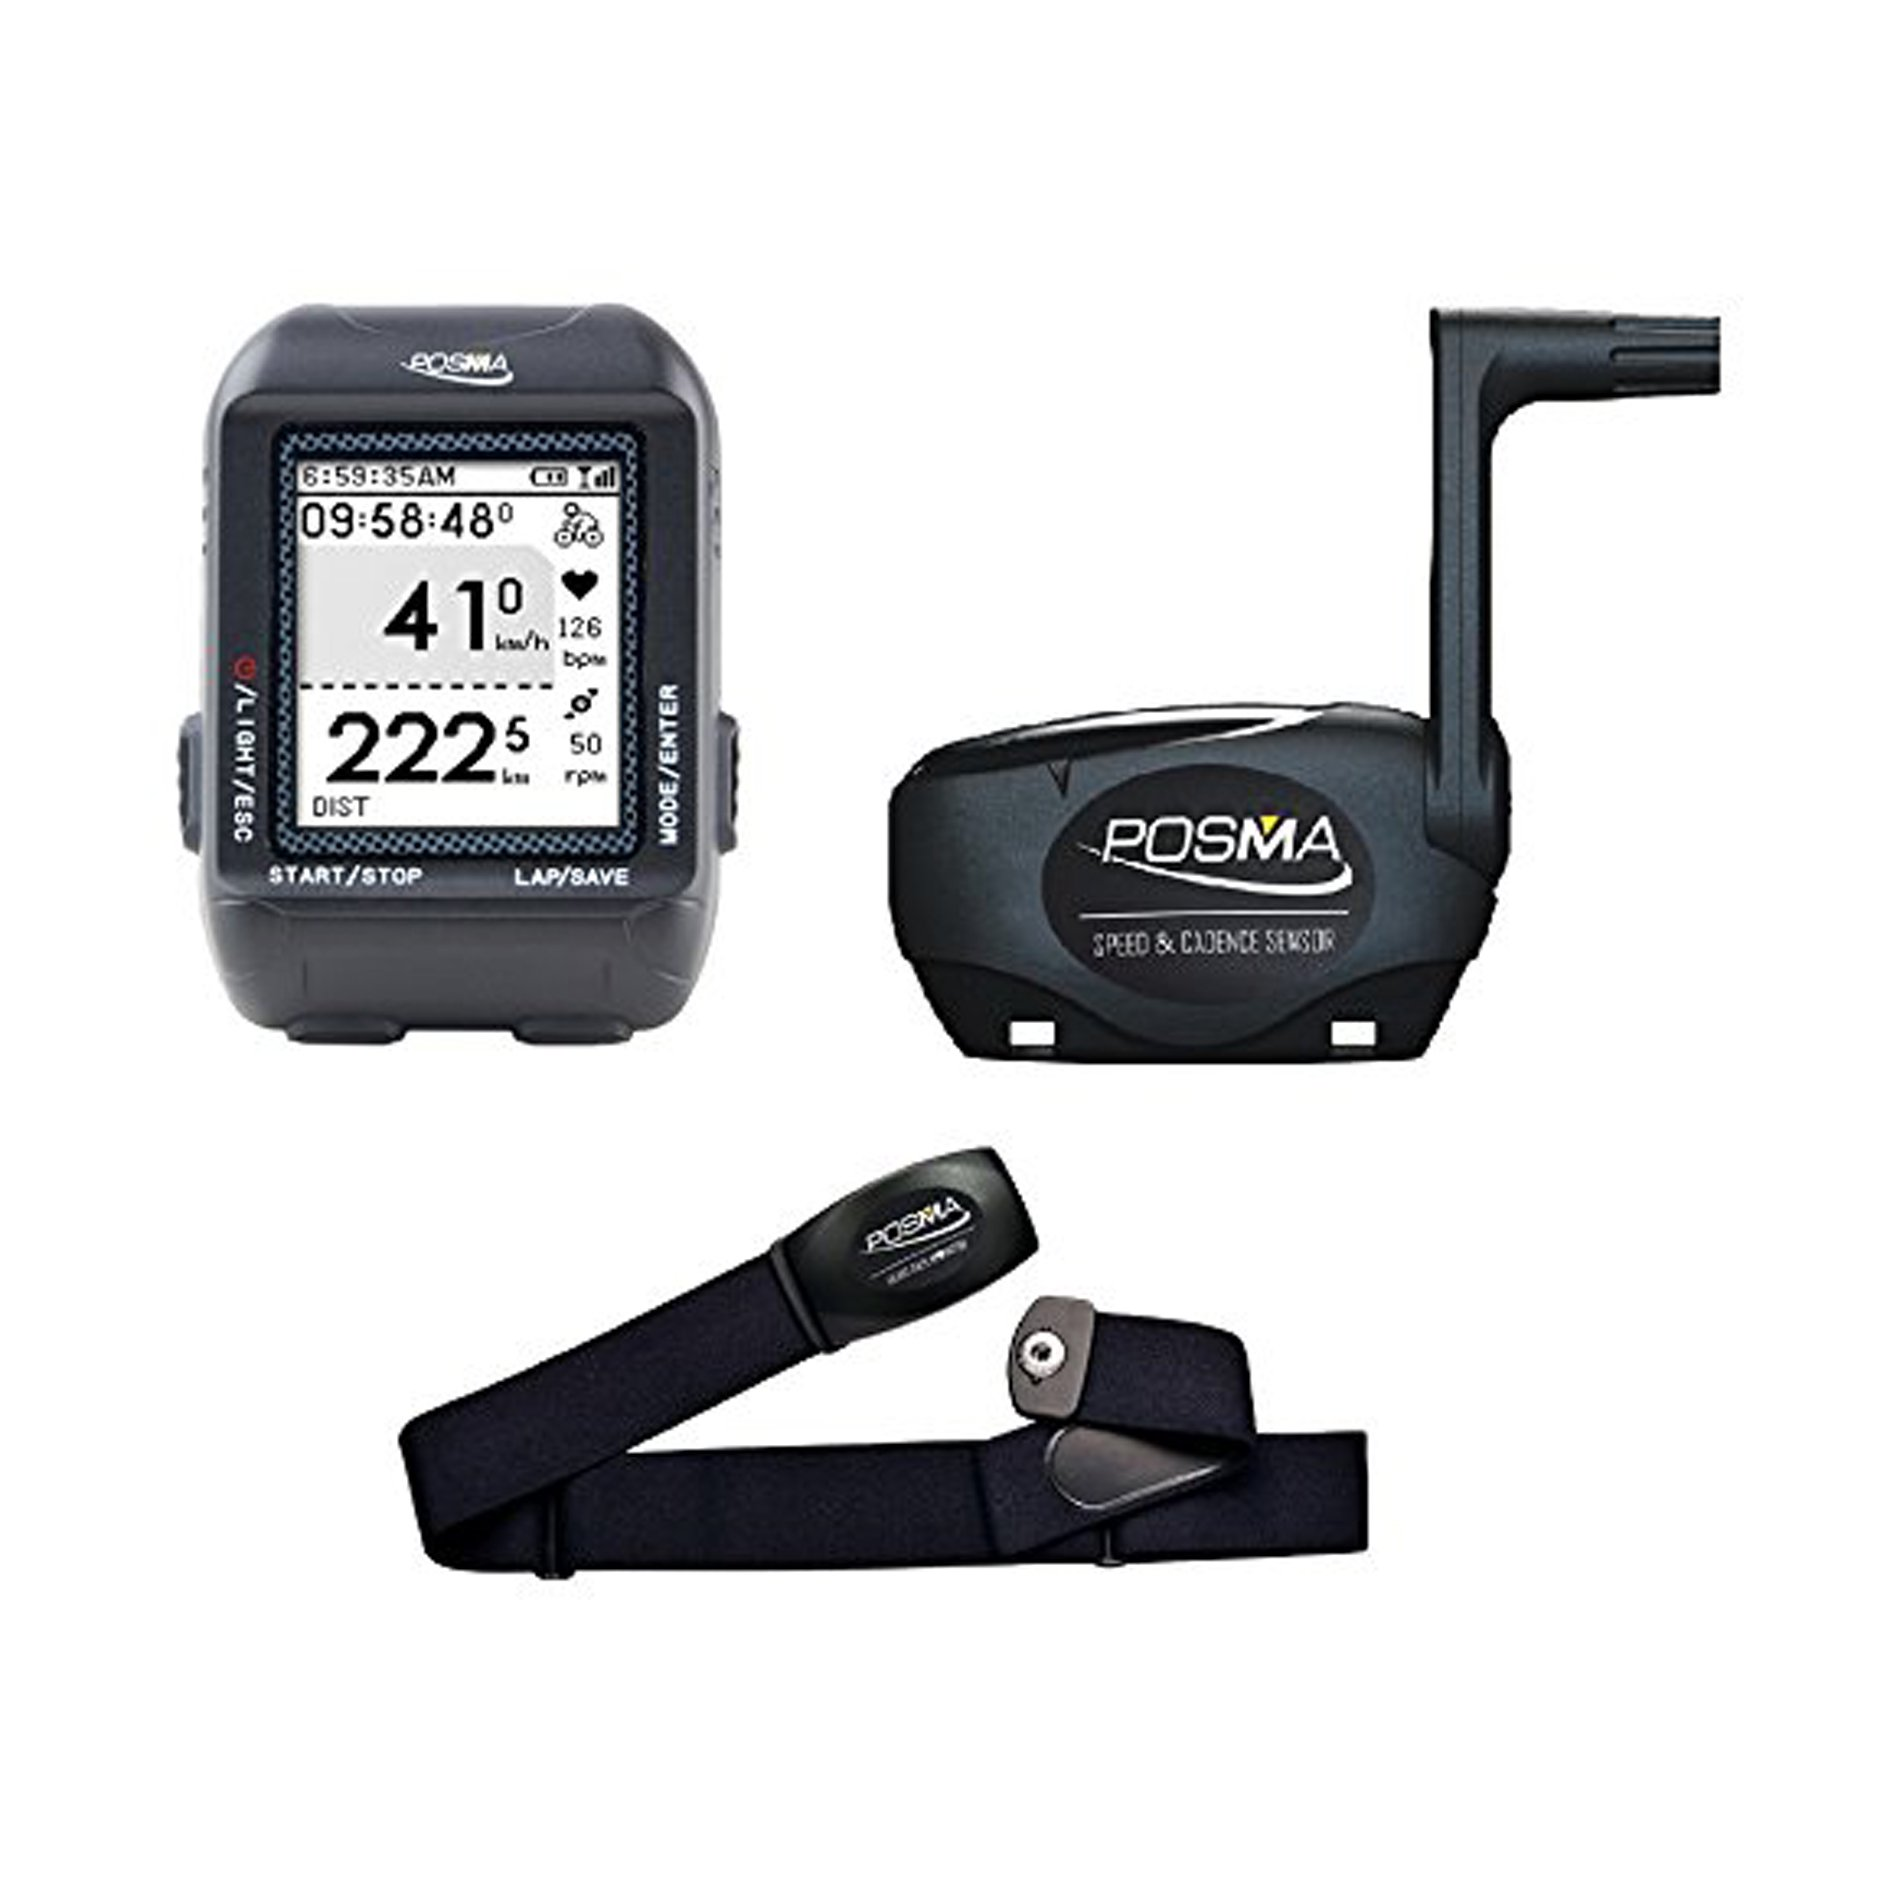 POSMA D3 GPS Cycling Bike Computer Speedometer Odometer with BCB20 Speed/Cadence Sensor & BHR20 Heart Rate Monitor by IDS Home